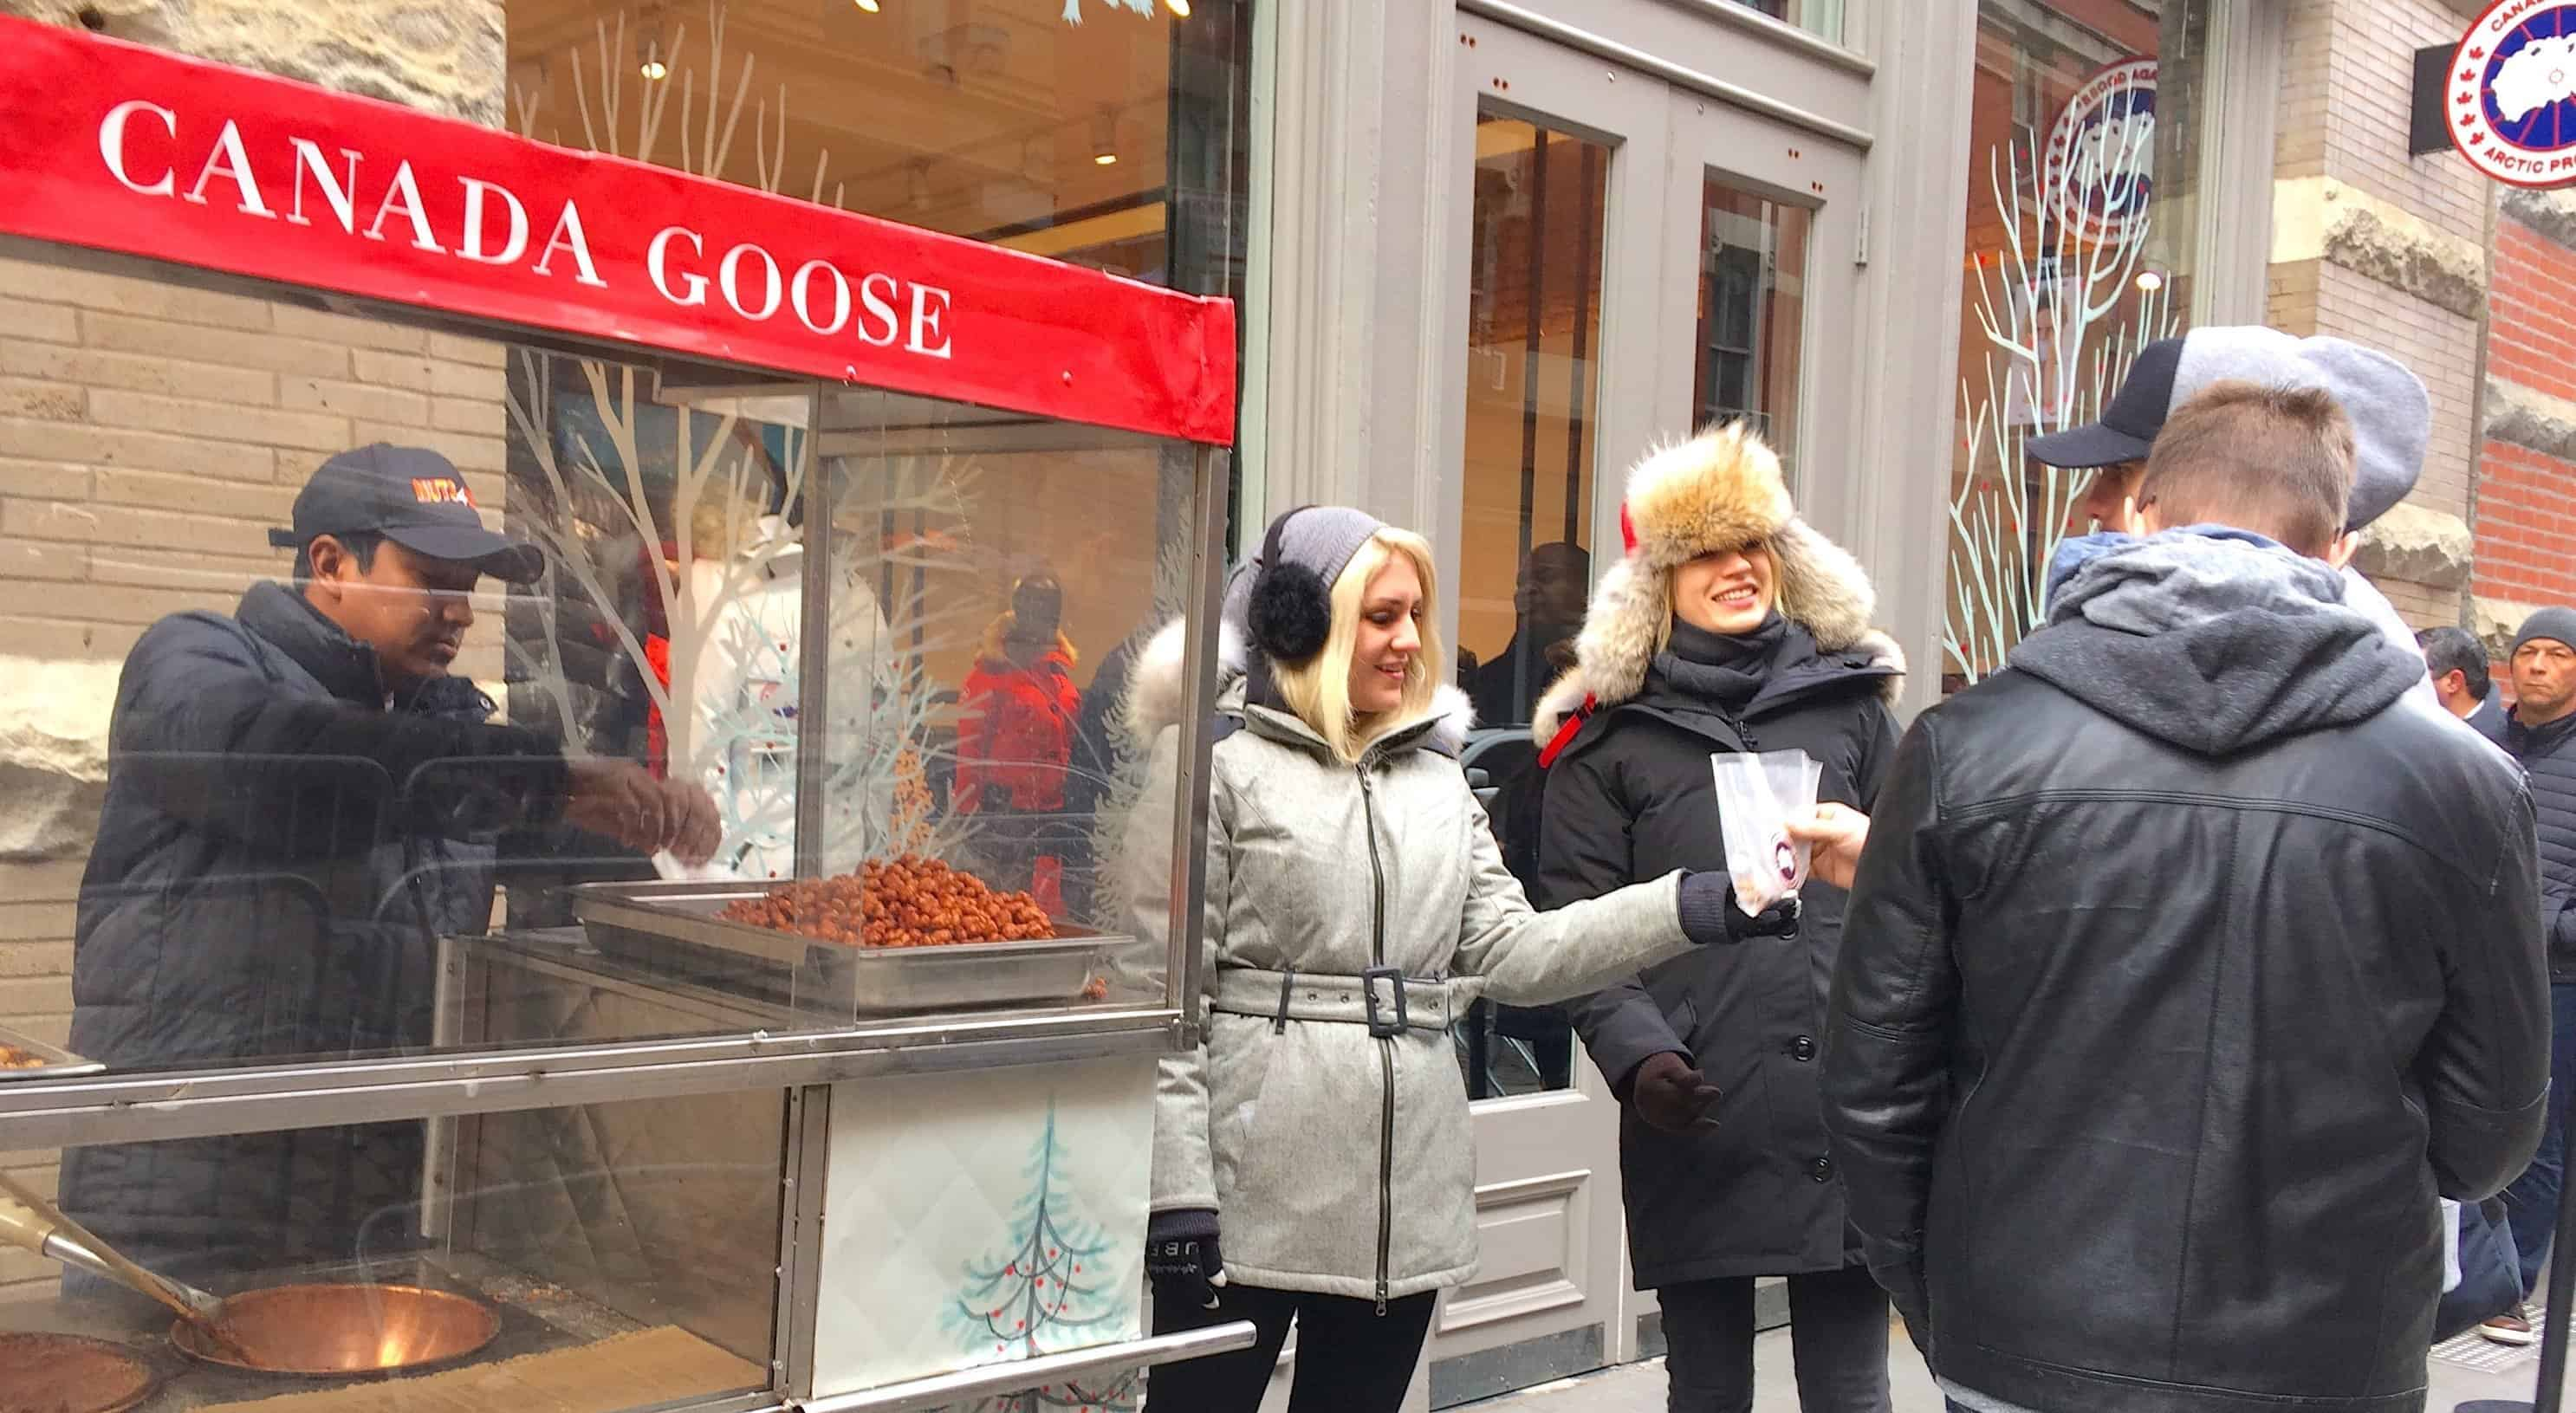 Canada Goose Retail Marketing Activation - Soho, New York City